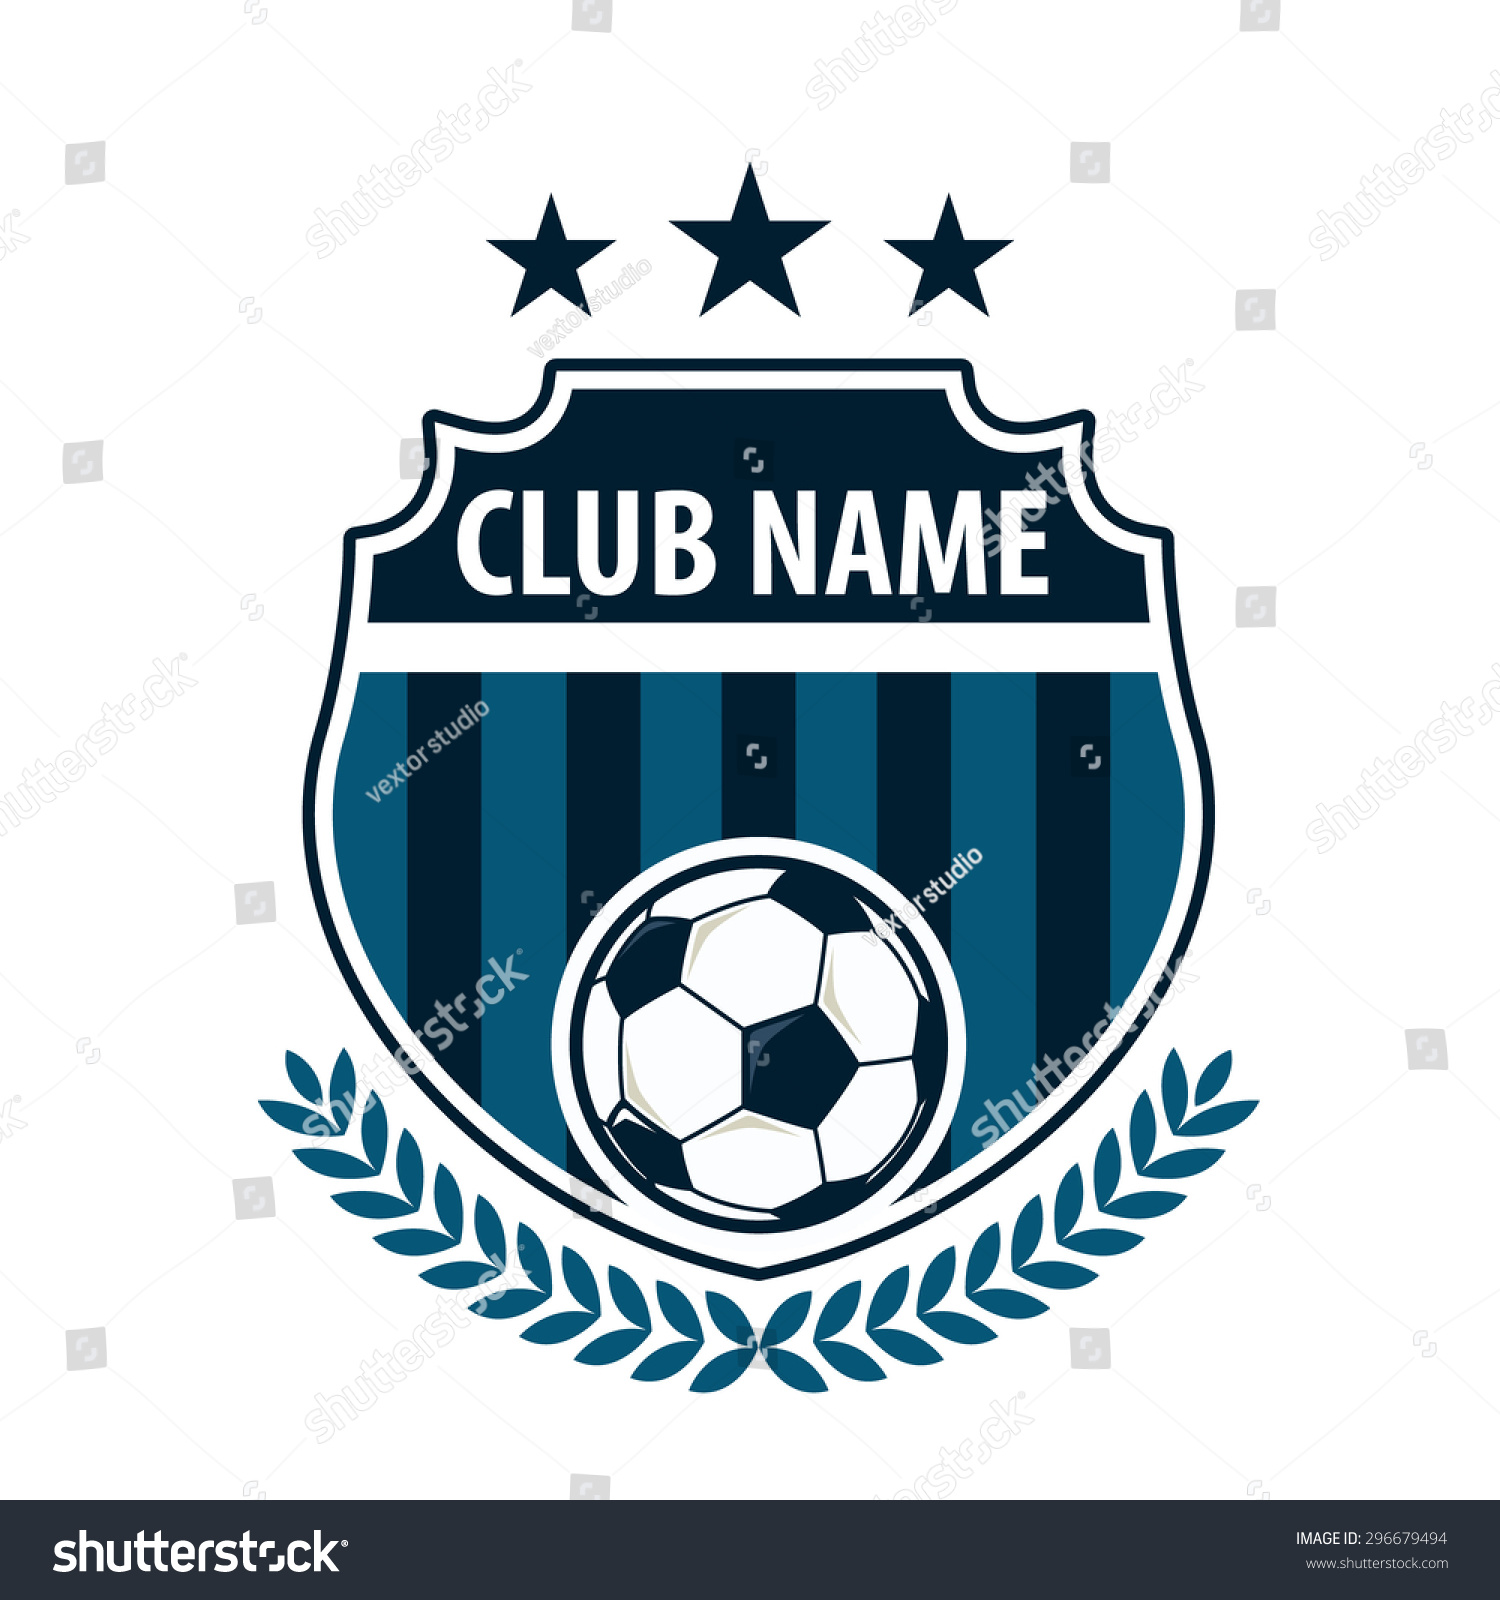 blank soccer logo designs wwwimgkidcom the image kid